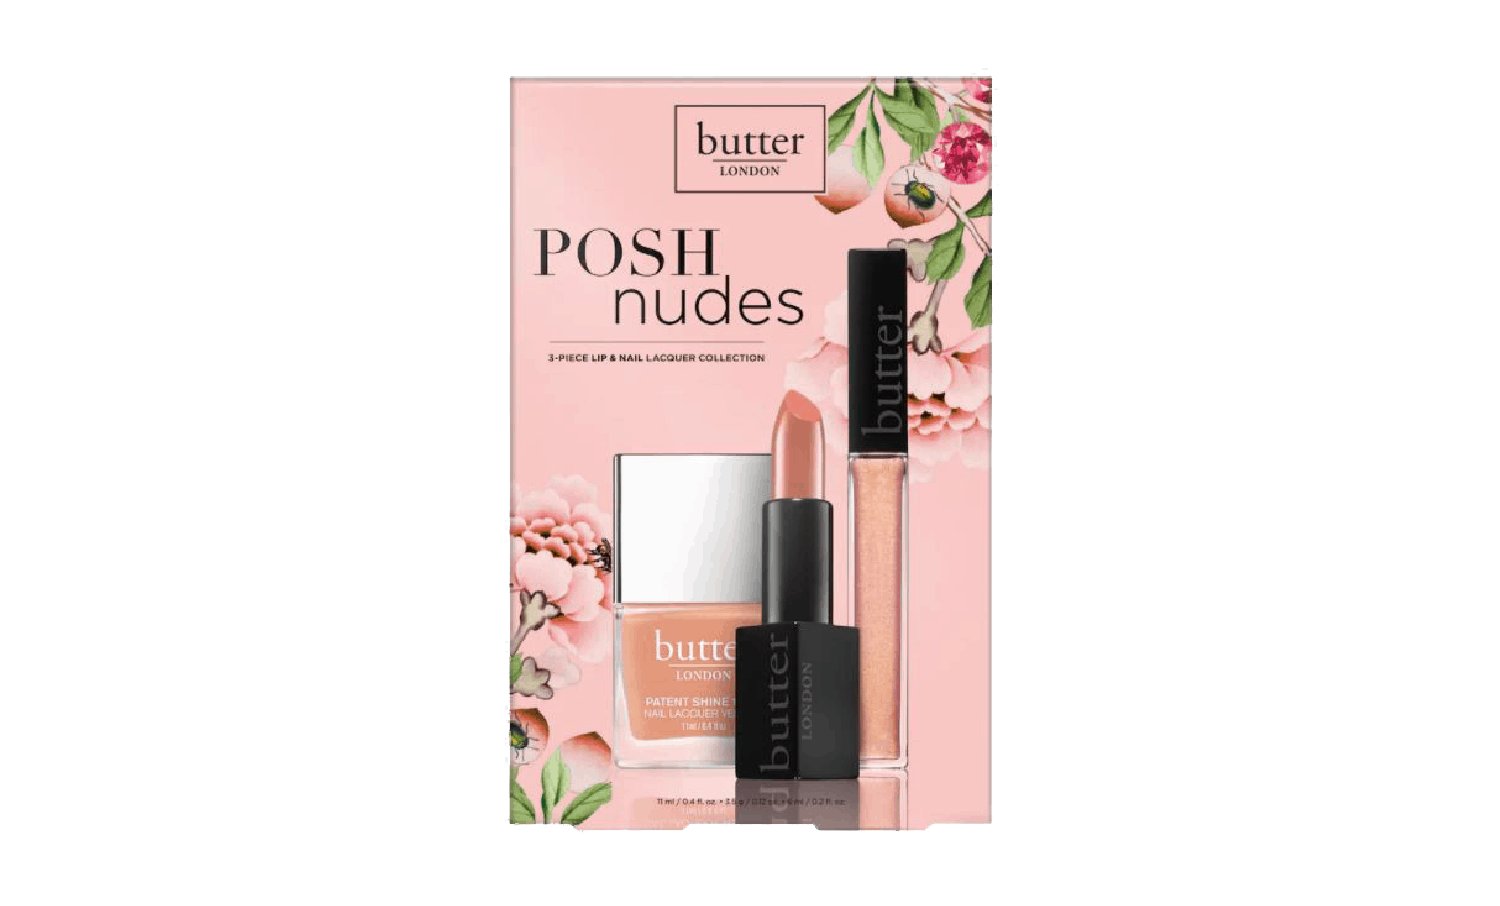 Butter Posh Nudes 3-piece Lip and Nail Collection